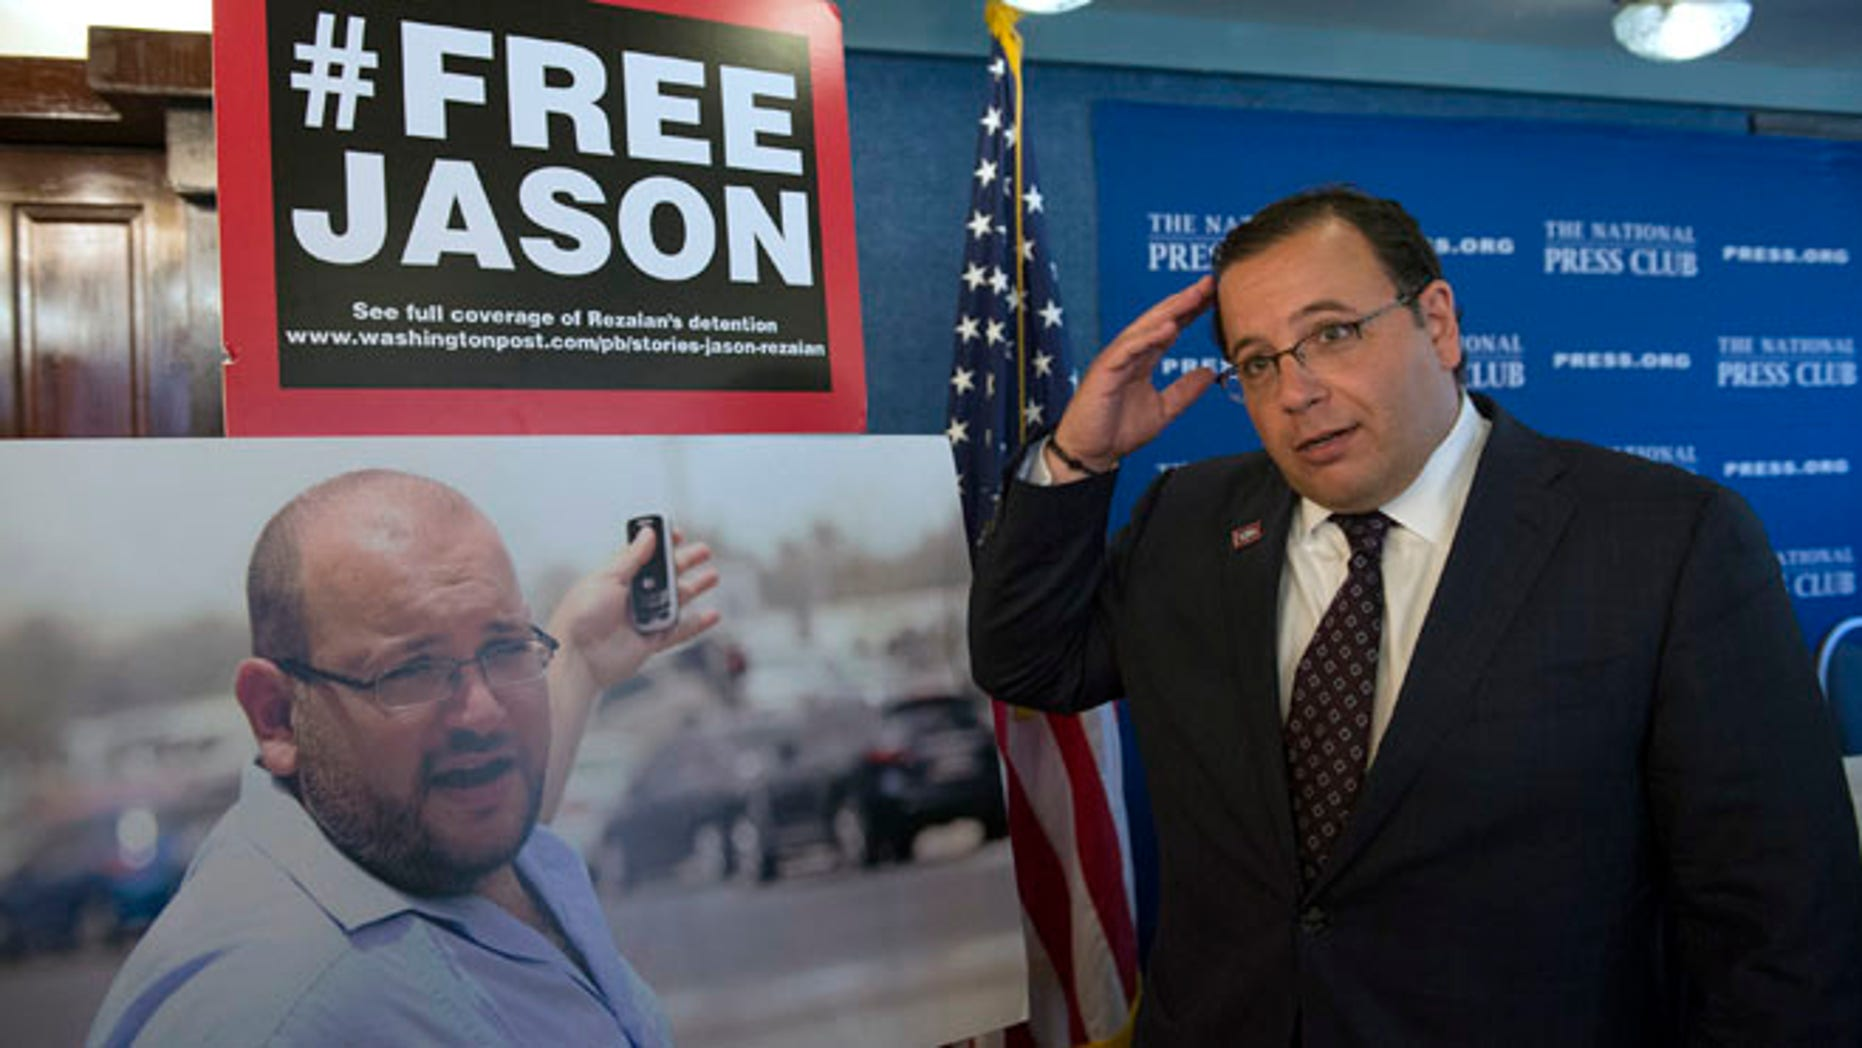 Ali Rezaian, brother of Jason Rezaian, The Washington Post's Tehran Bureau Chief who is currently in Evin Prison in Iran, talks about his brother at a news conference.